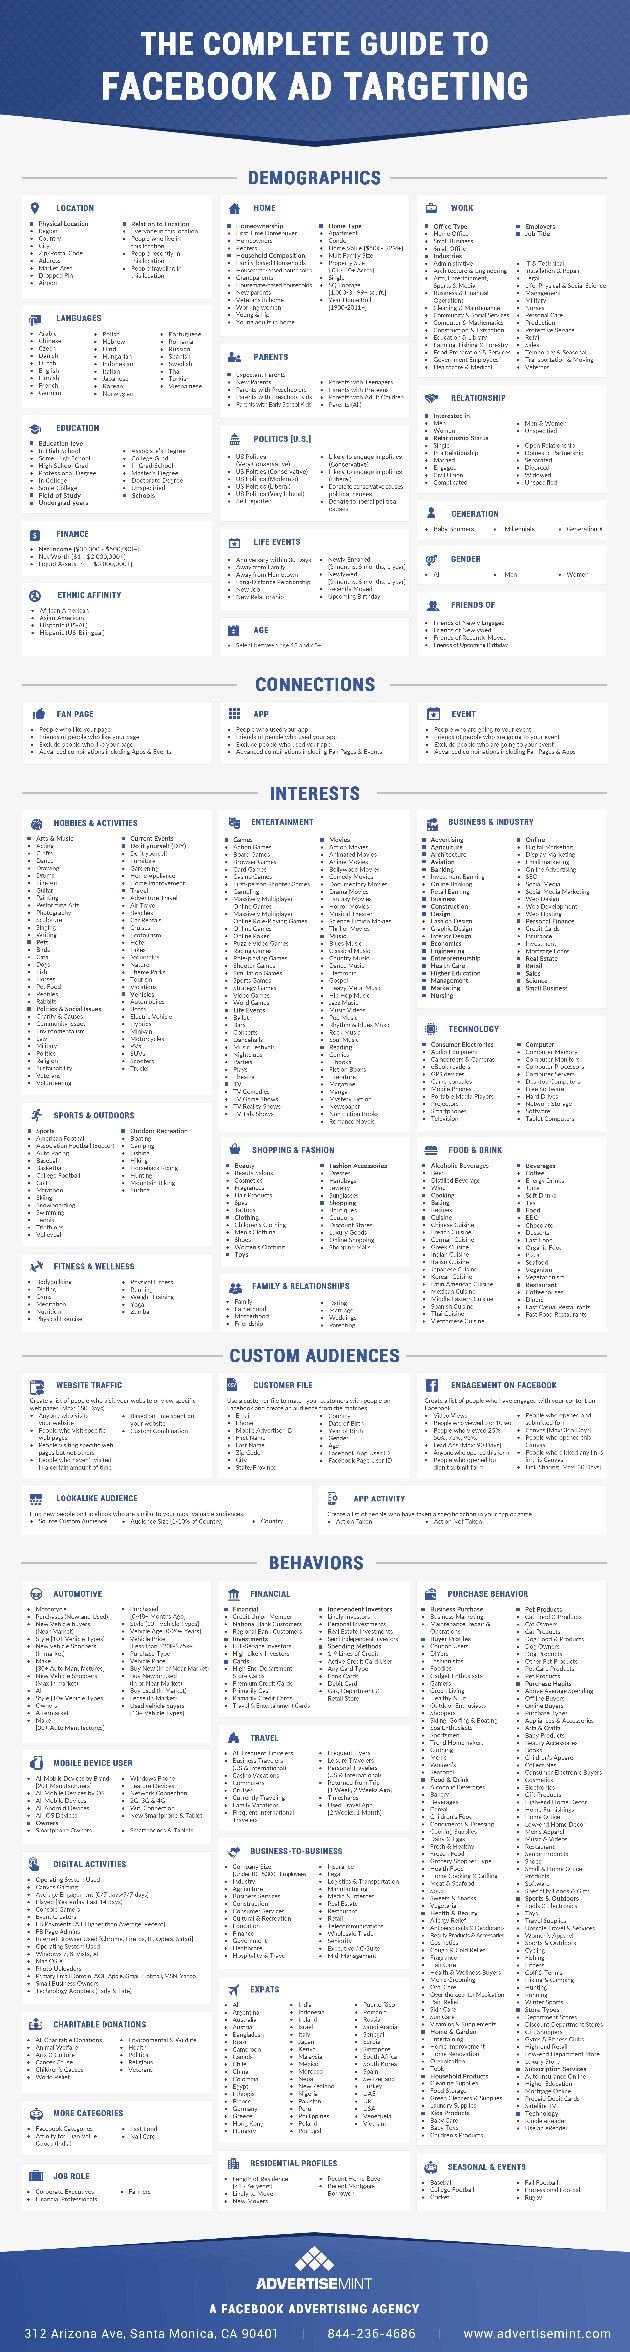 Facebook Ad Targeting: A Complete Guide | MarketingProfs Infographic